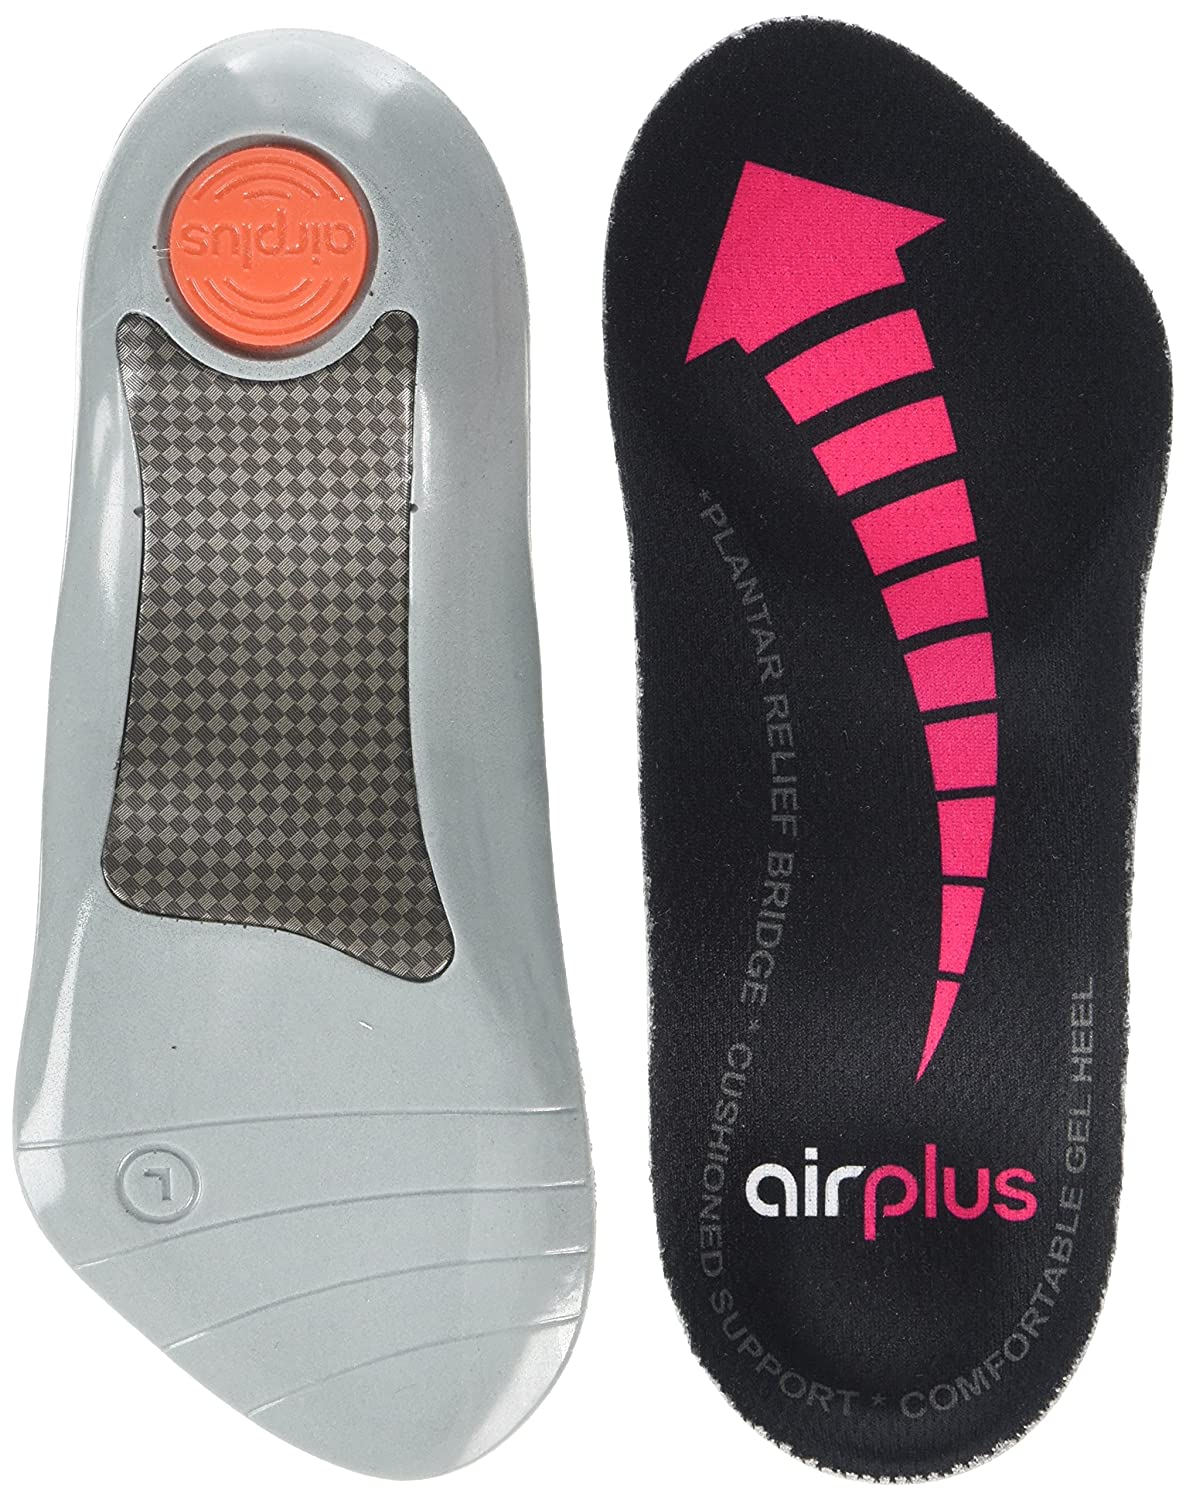 682a6305a4 Airplus Womens Plantar Fasciitis-75019 Orthotic Insole Black Medium:  Amazon.co.uk: Health & Personal Care